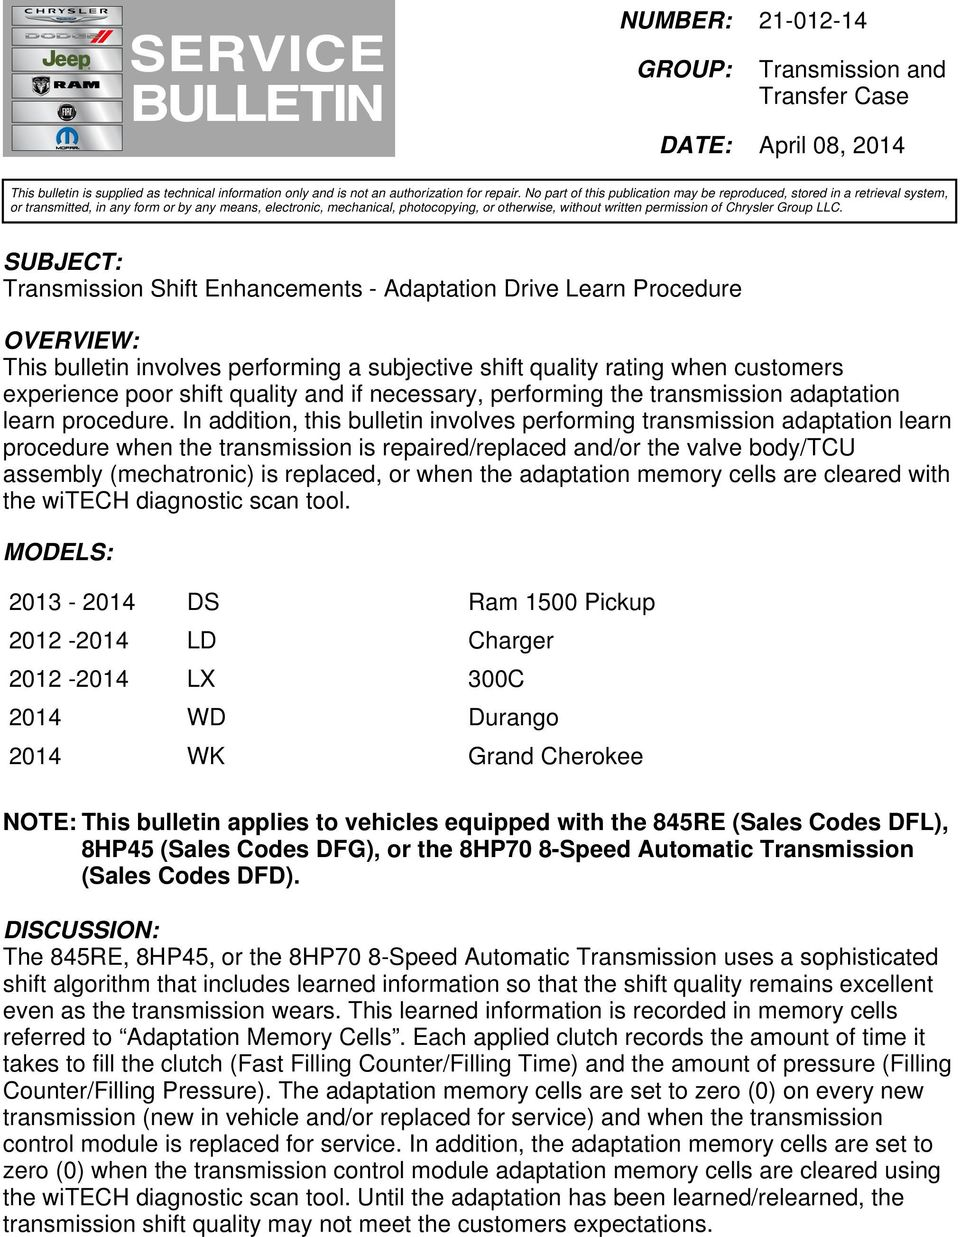 SUBJECT: Transmission Shift Enhancements - Adaptation Drive Learn